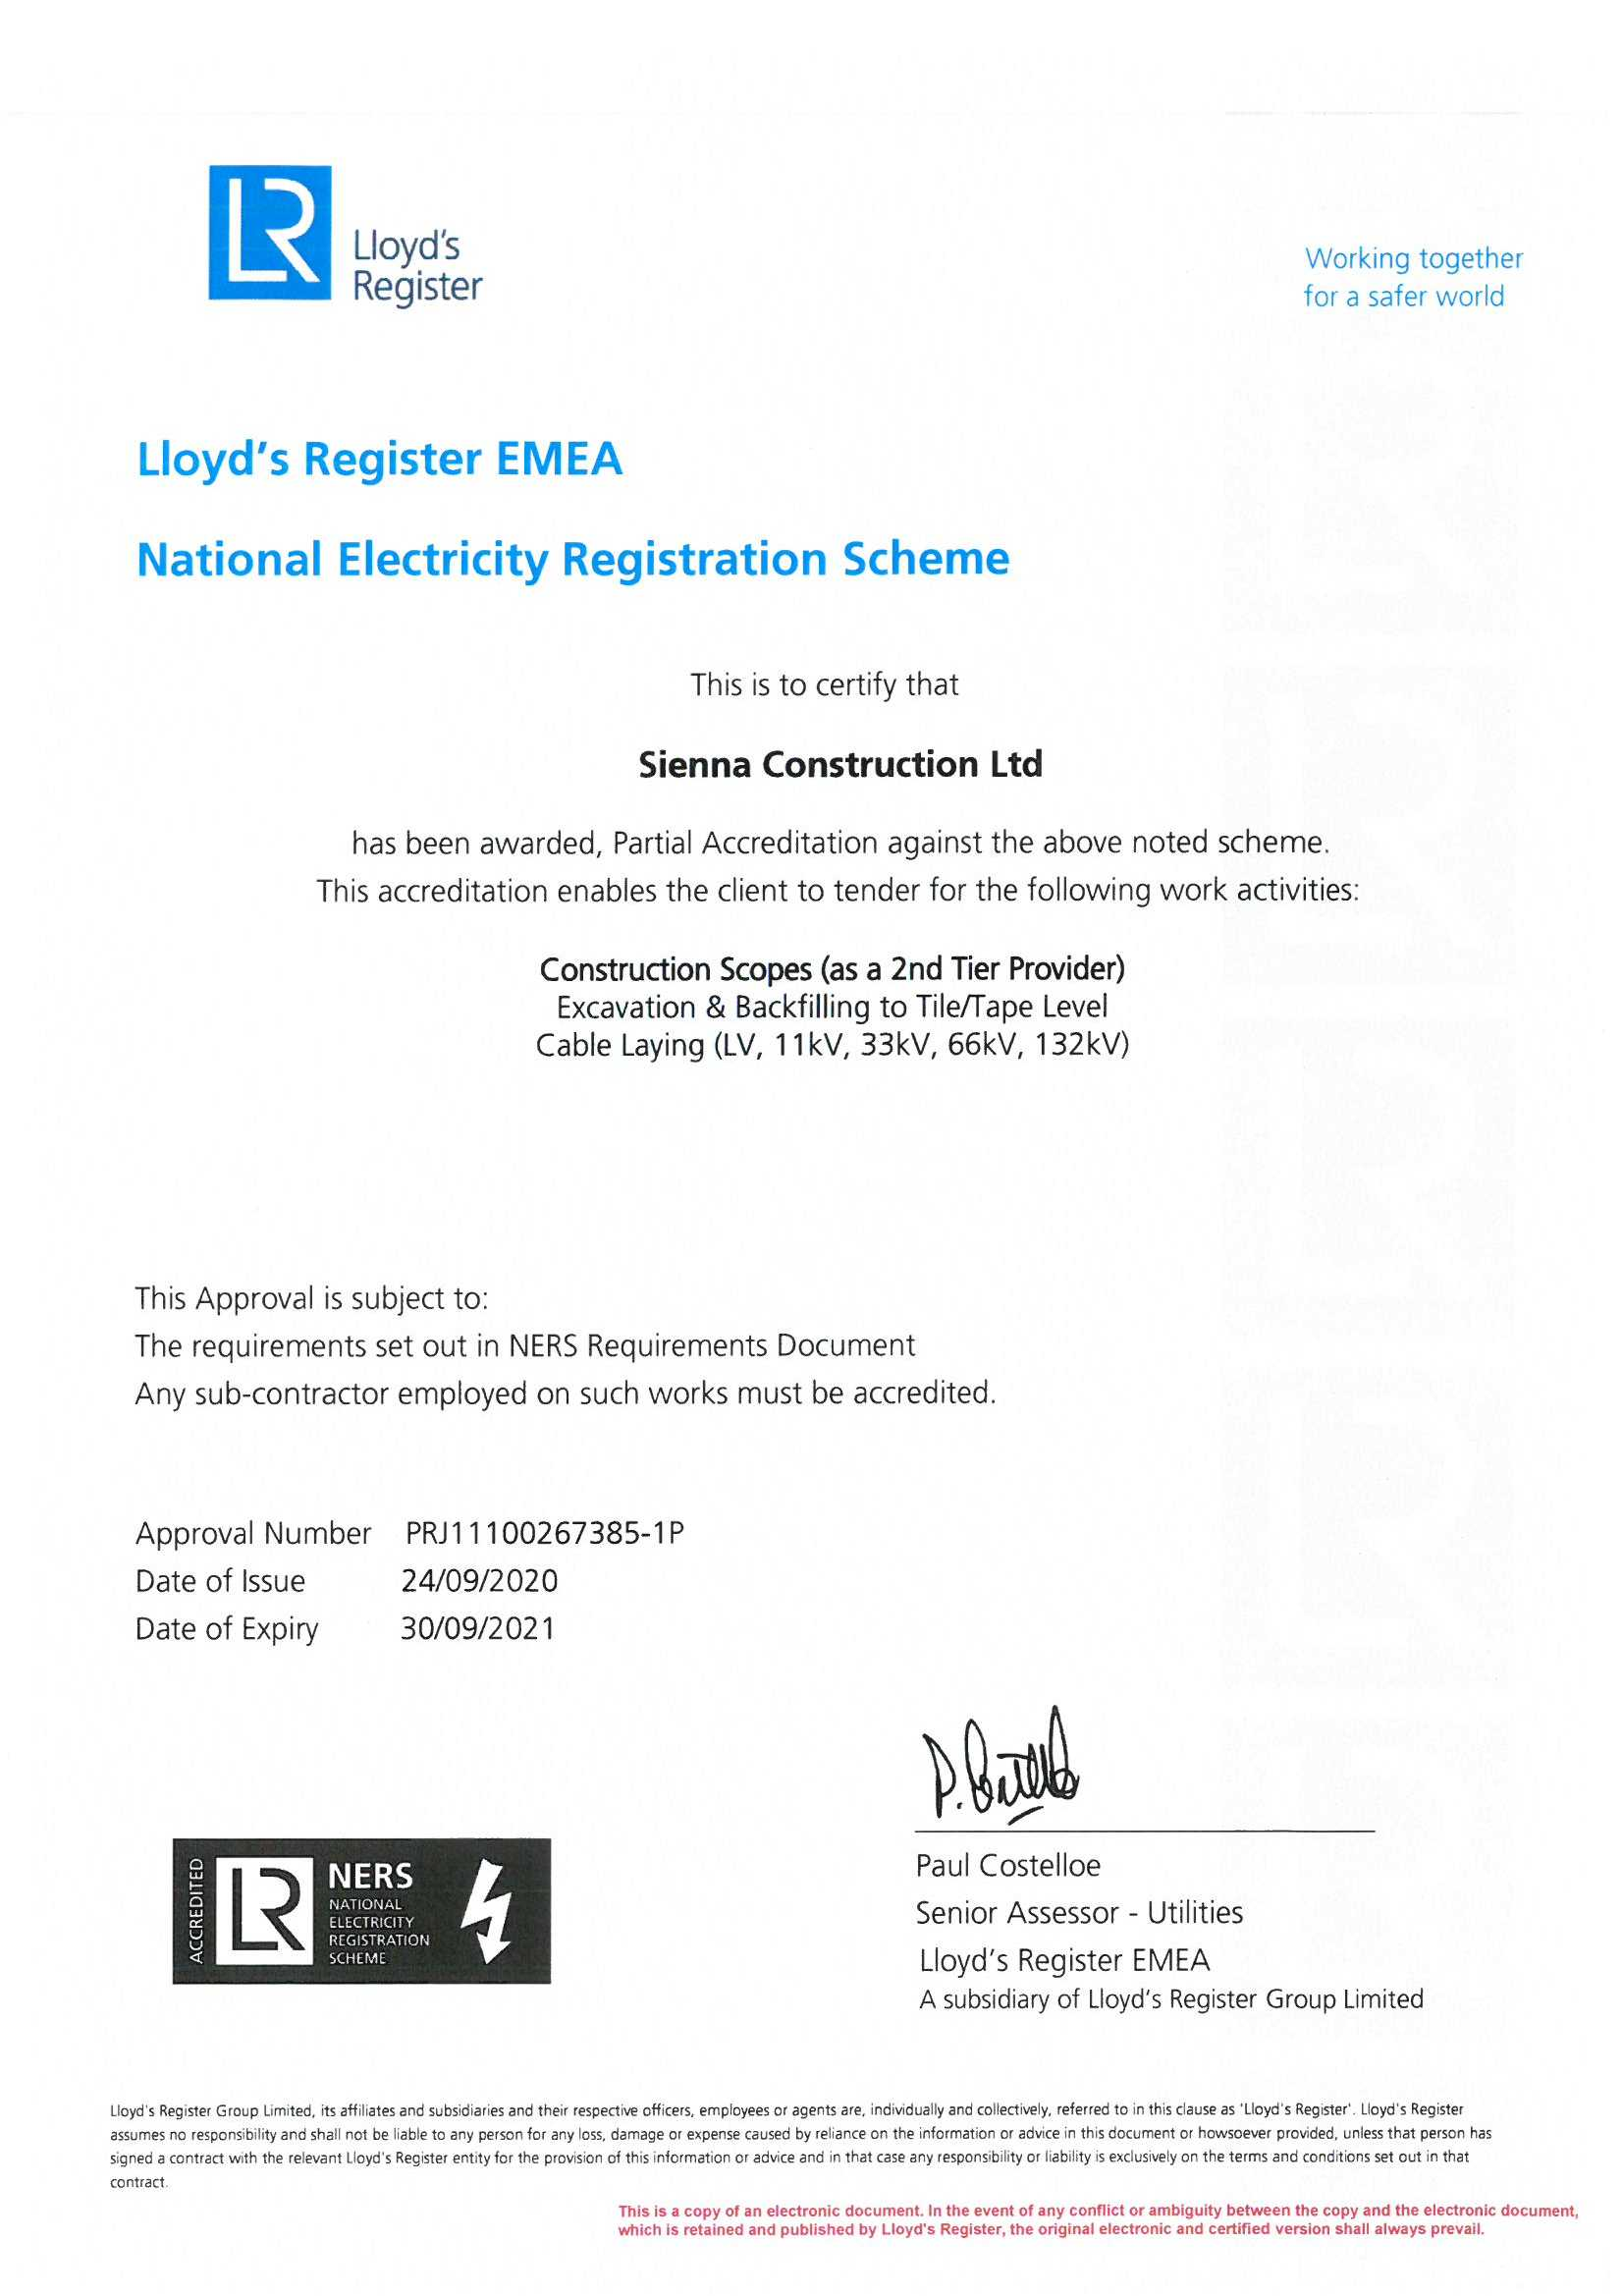 NERS certificate